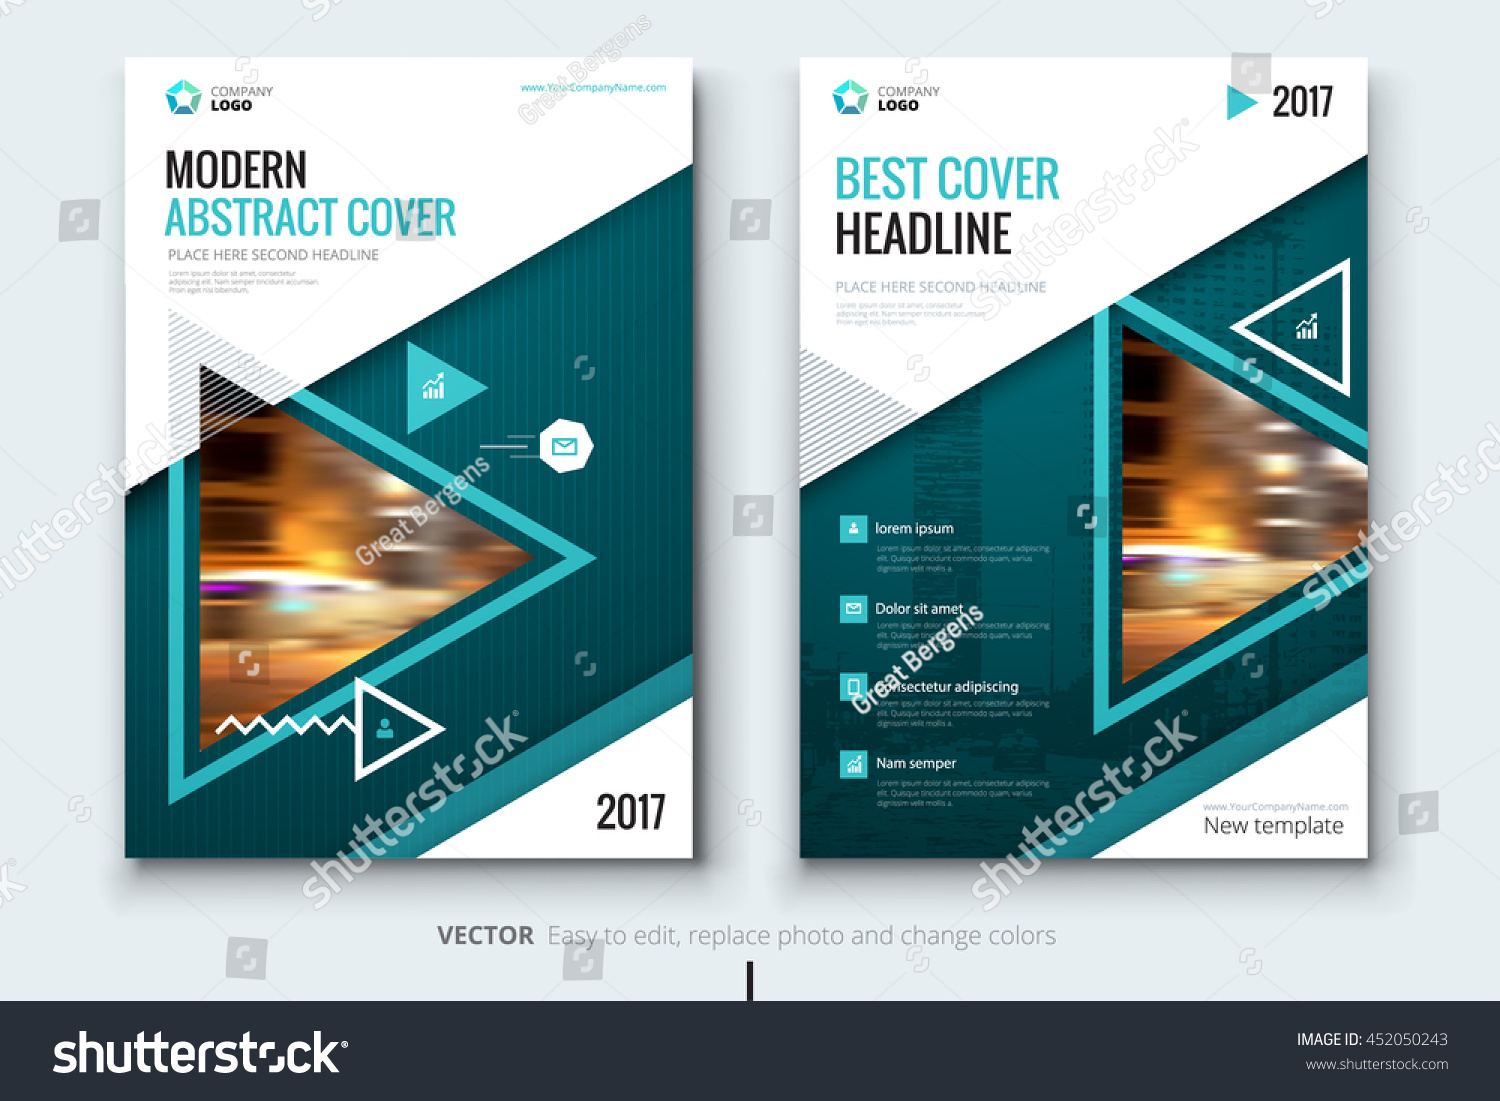 Teal Modern Catalog Design Corporate Business Stock Vector